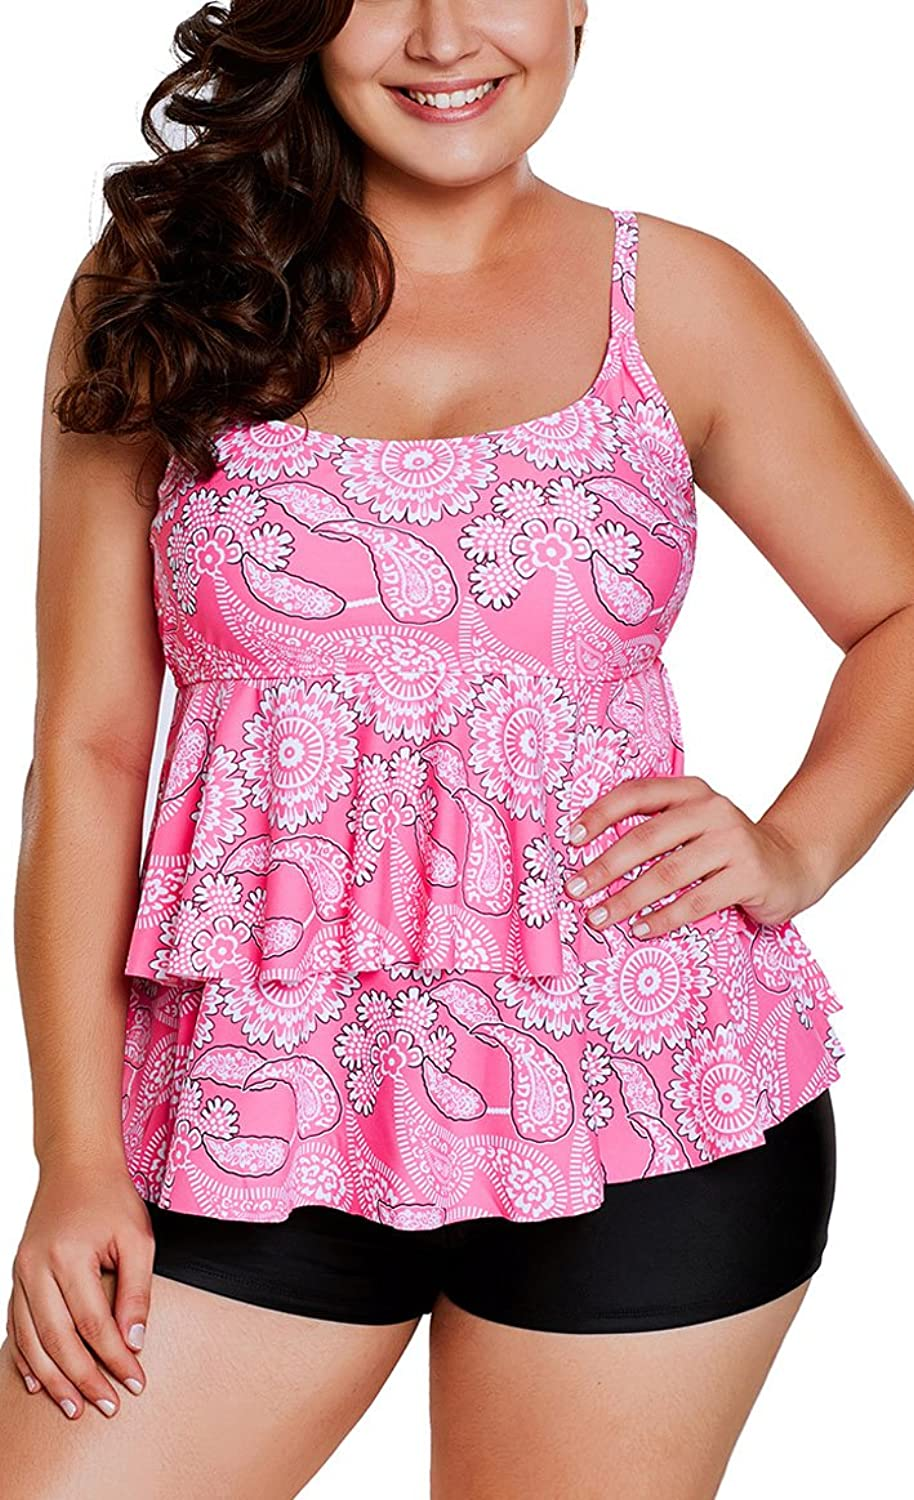 12e4cde8ee691 Top2: Lu&lu Women\'s Stylish Pink Paisley Print Ruffle Layered Tankini and  Short Set Sexy Plus Size Swimwear